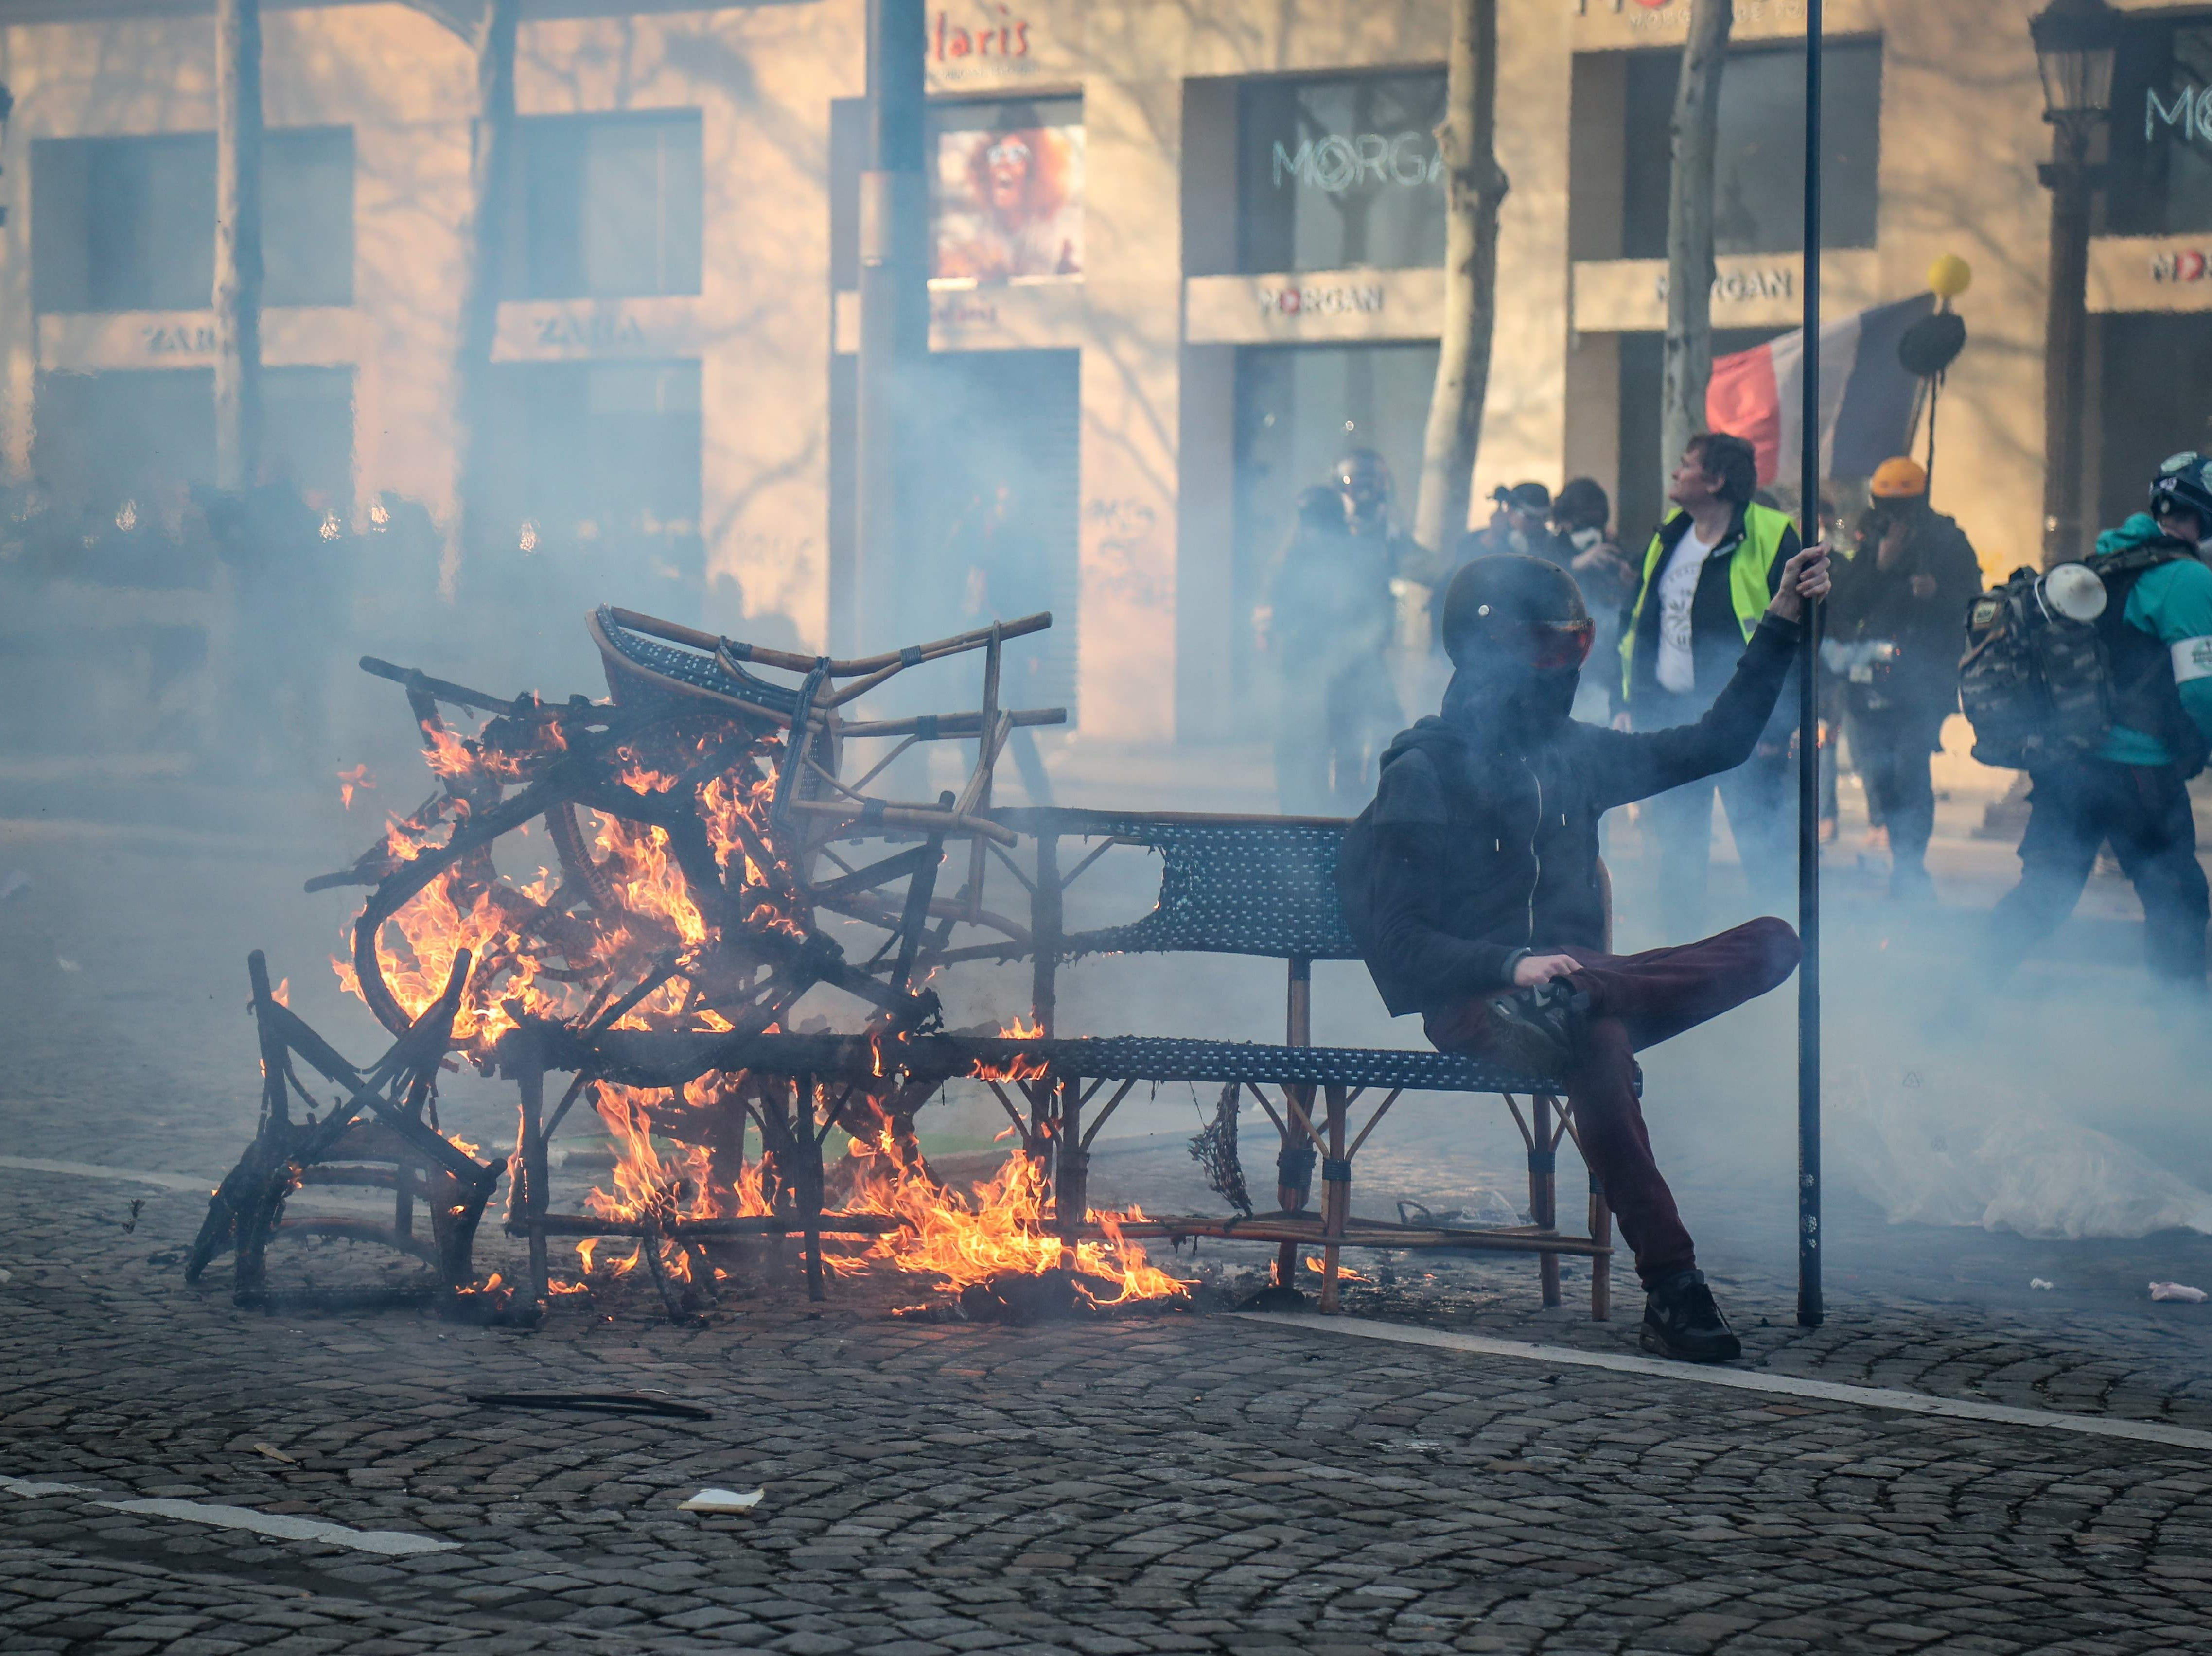 A protester sits on a bench part of a burning barricade of restaurant chairs on the Champs-Elysees in Paris on March 16, 2019, during clashes between riot police forces and Yellow Vest protesters on the 18th consecutive Saturday of demonstrations called by the 'Yellow Vest' (gilets jaunes) movement.